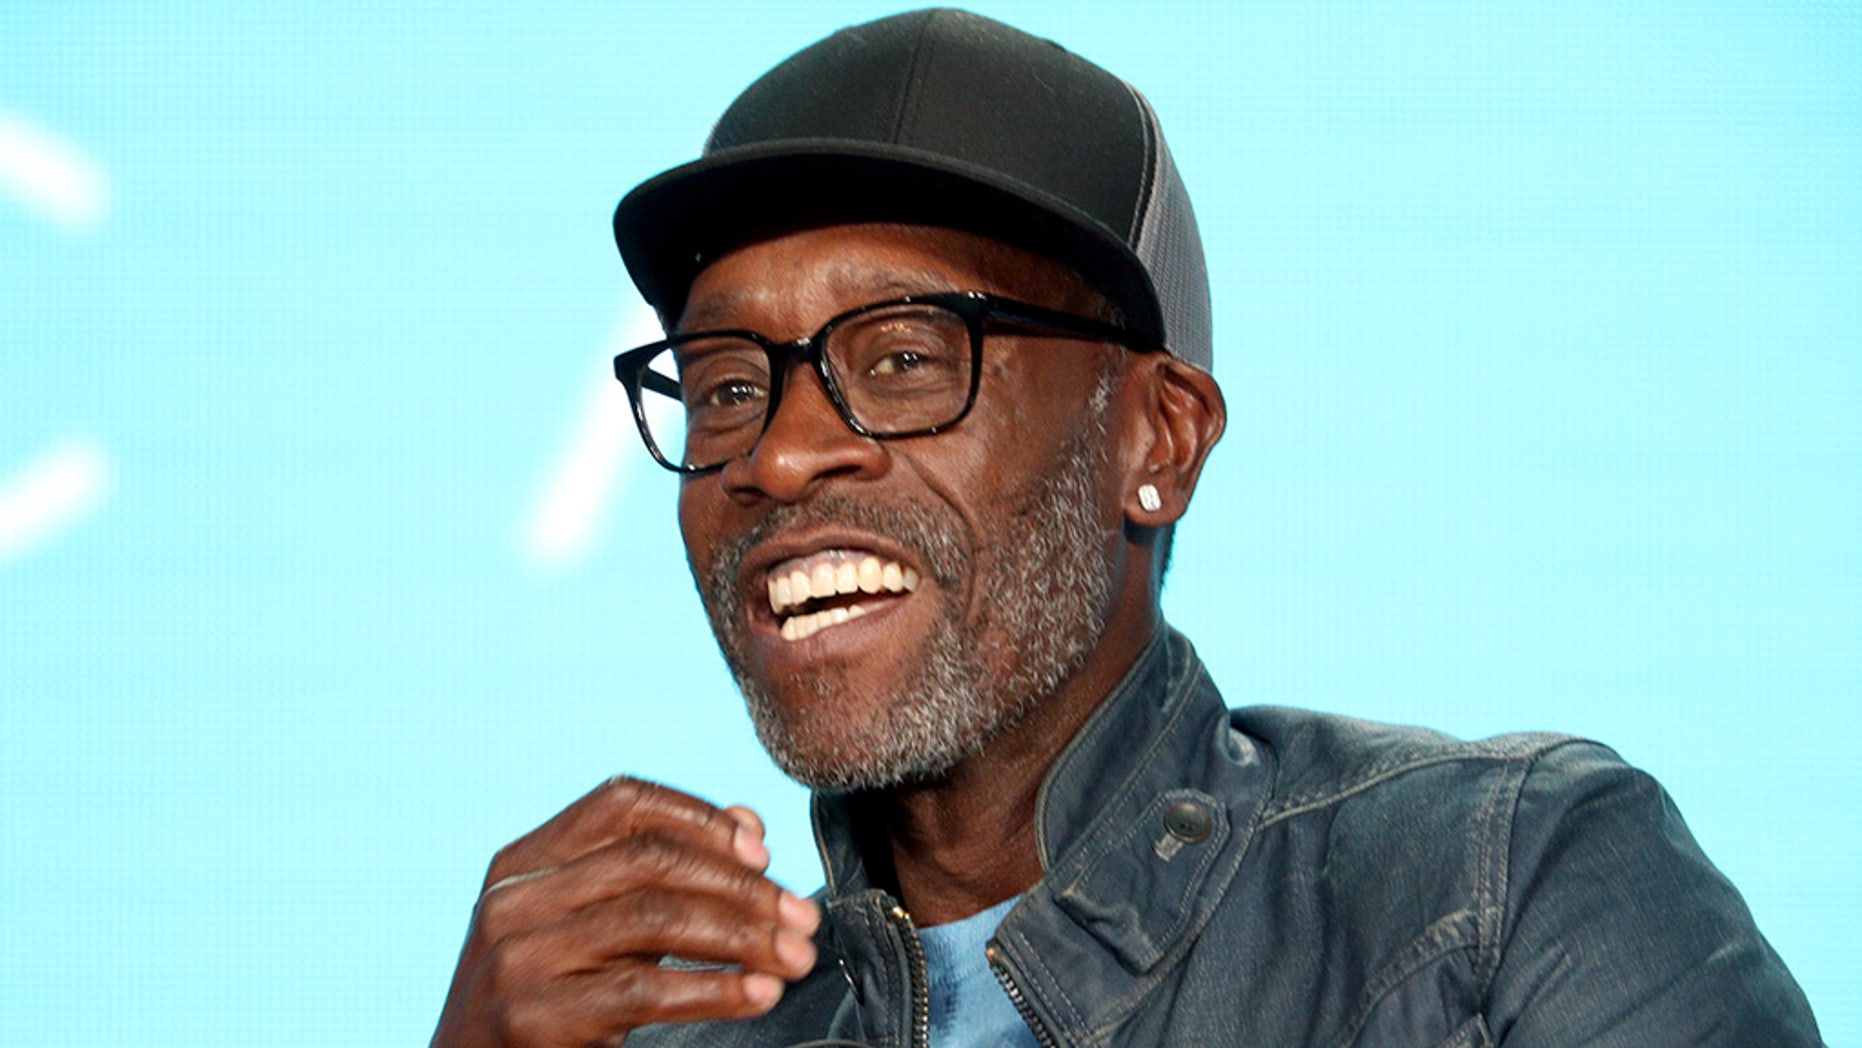 Don Cheadle was asked if he thinks our government is heading towards a plutocracy during the Showtime segment of the 2019 Winter Television Critics Association Press Tour at The Langham Huntington on January 31, 2019 in Pasadena, Calif.